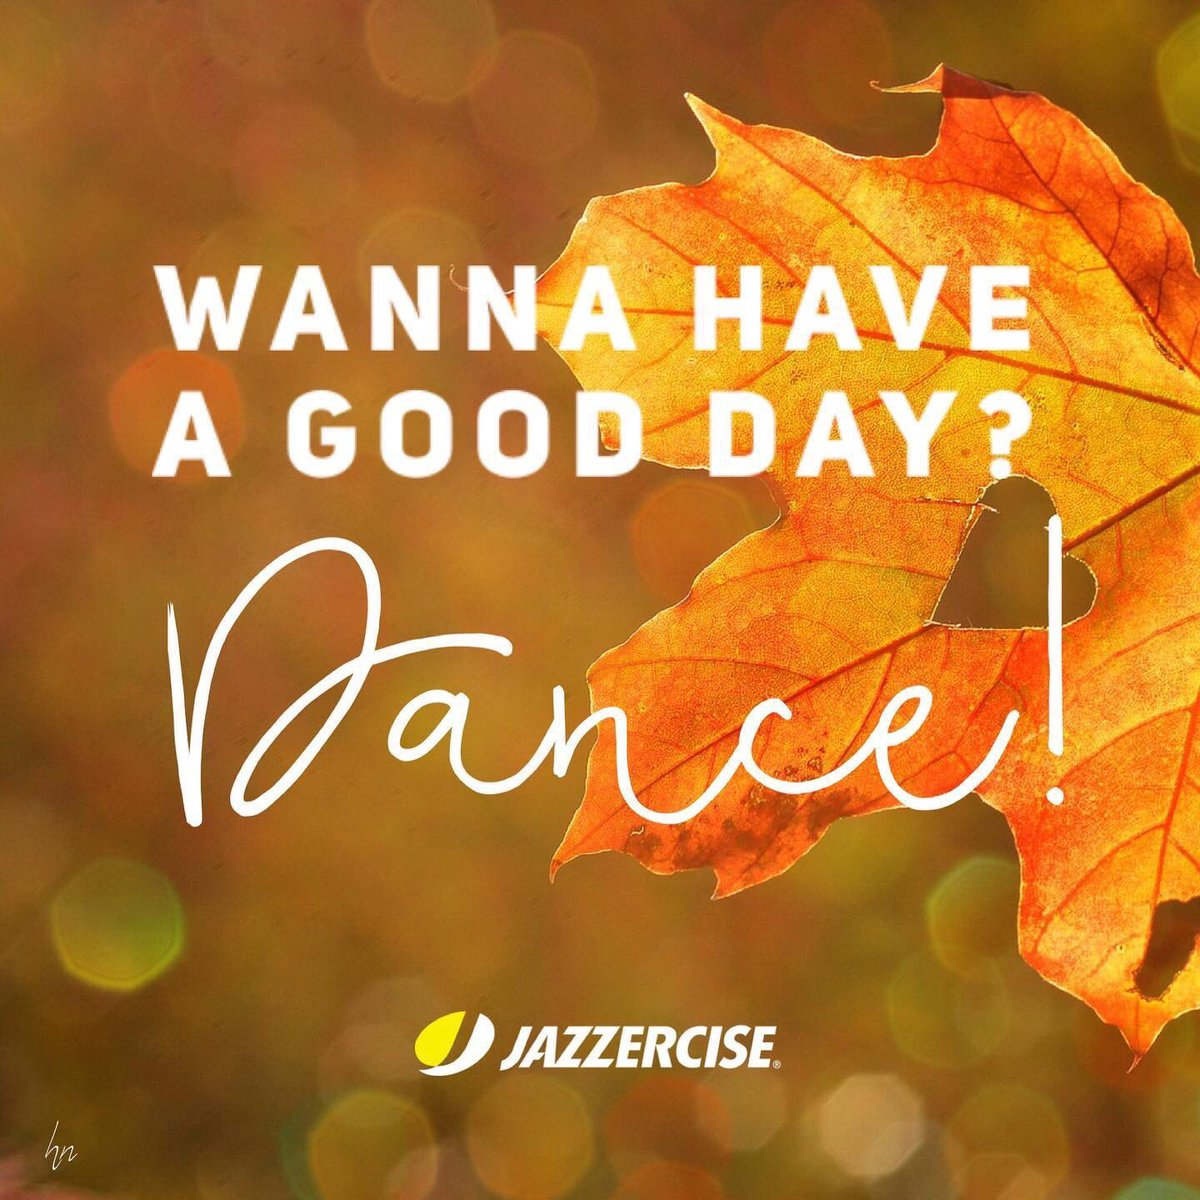 Monday's are a great day when you get to #Dance👟  #ThisIsYourTime #ThisIsJazzercise #2019ForRestOf2019  9.30am #Lo http://jcls.jazzercise.com/facility/jazzercise-south-woodham-ferrers-champions-manor-hall…  10am #Lo http://jcls.jazzercise.com/facility/irdsa-hall…   7pm #DanceMixx http://jcls.jazzercise.com/facility/jazzercise-erith-christ-church-hall…  8pm #DanceMixx http://jcls.jazzercise.com/facility/hainault-community-centre…  http://jazzercise.net/UK/JazzerciseLondonEssexKent…